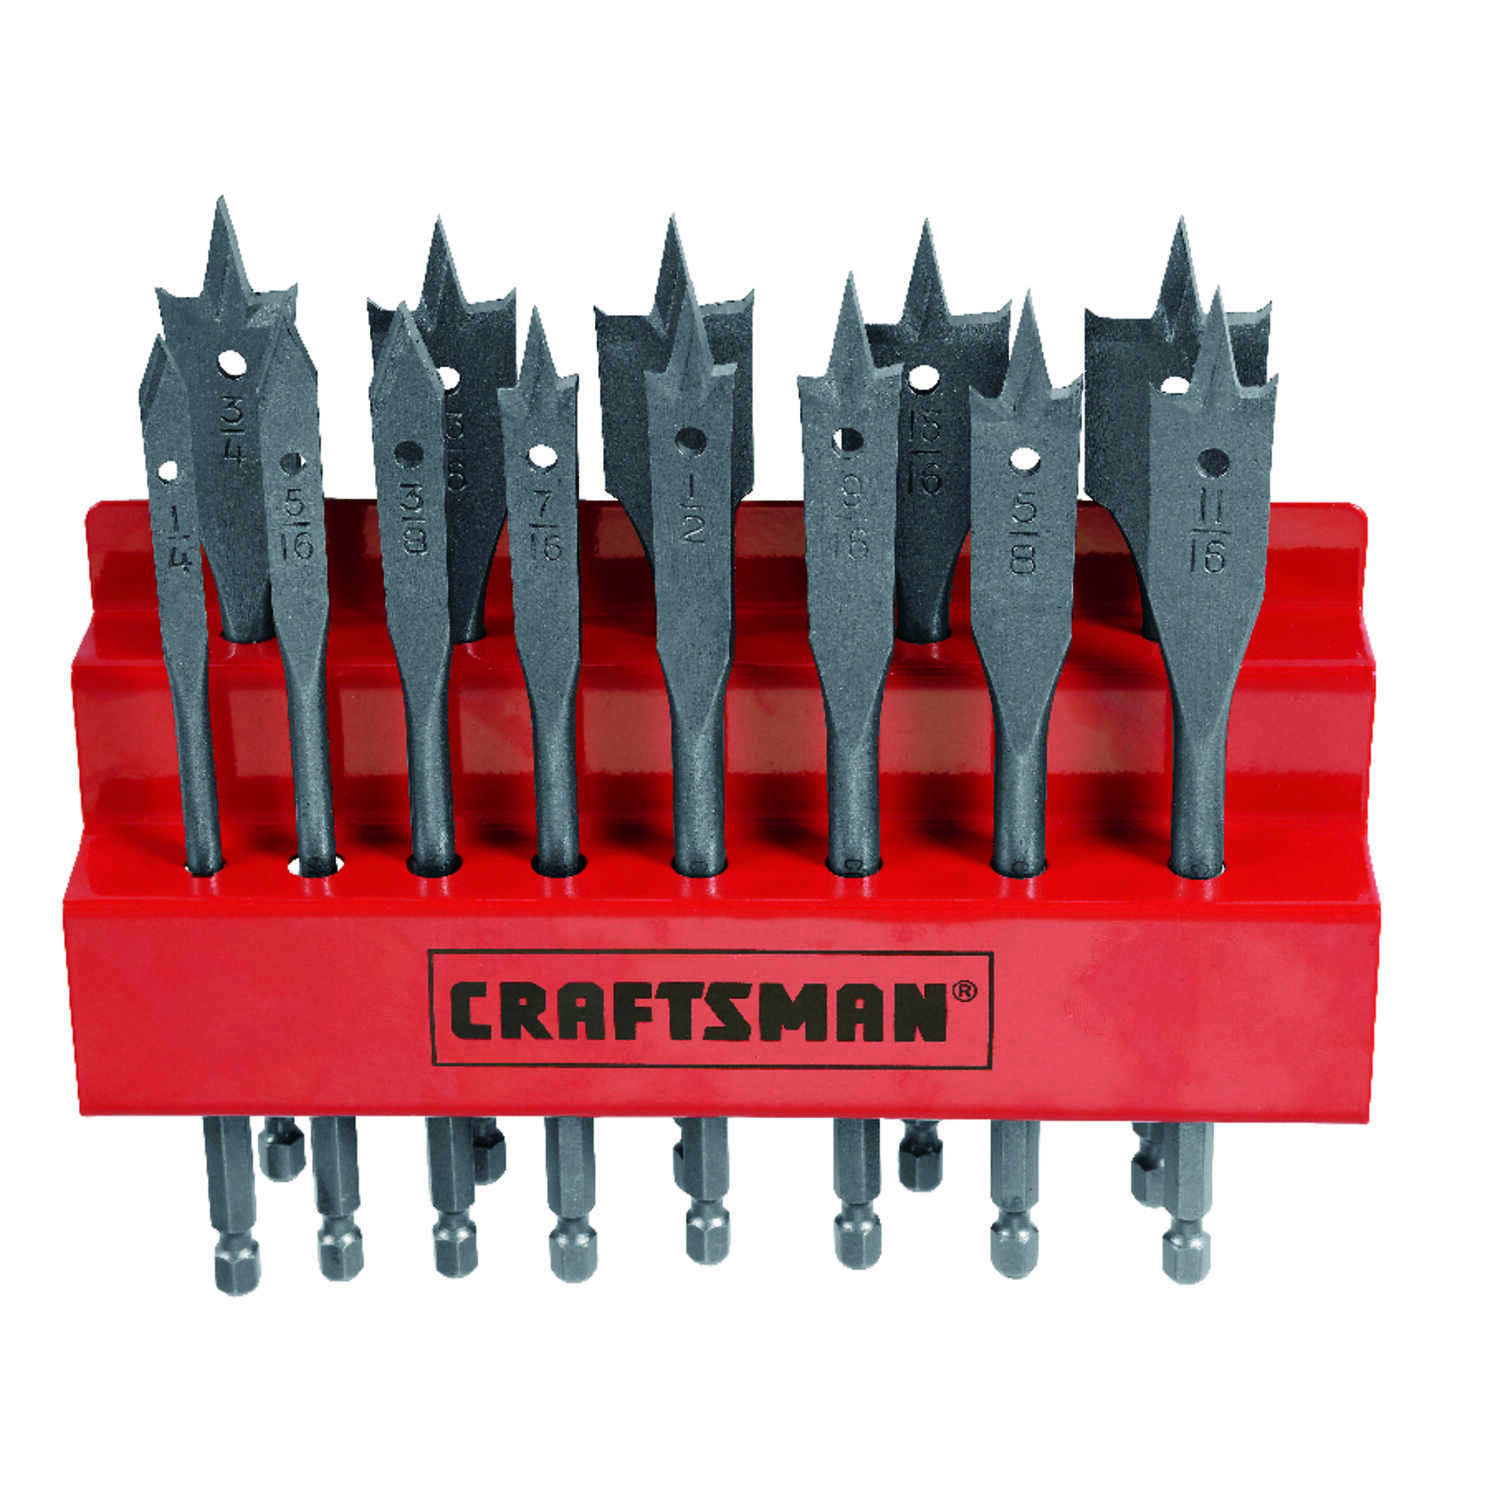 Craftsman  Multi Size in. Dia. x 1/4 inch  L Steel  Hex Shank  13 pc. Spade Bit Set